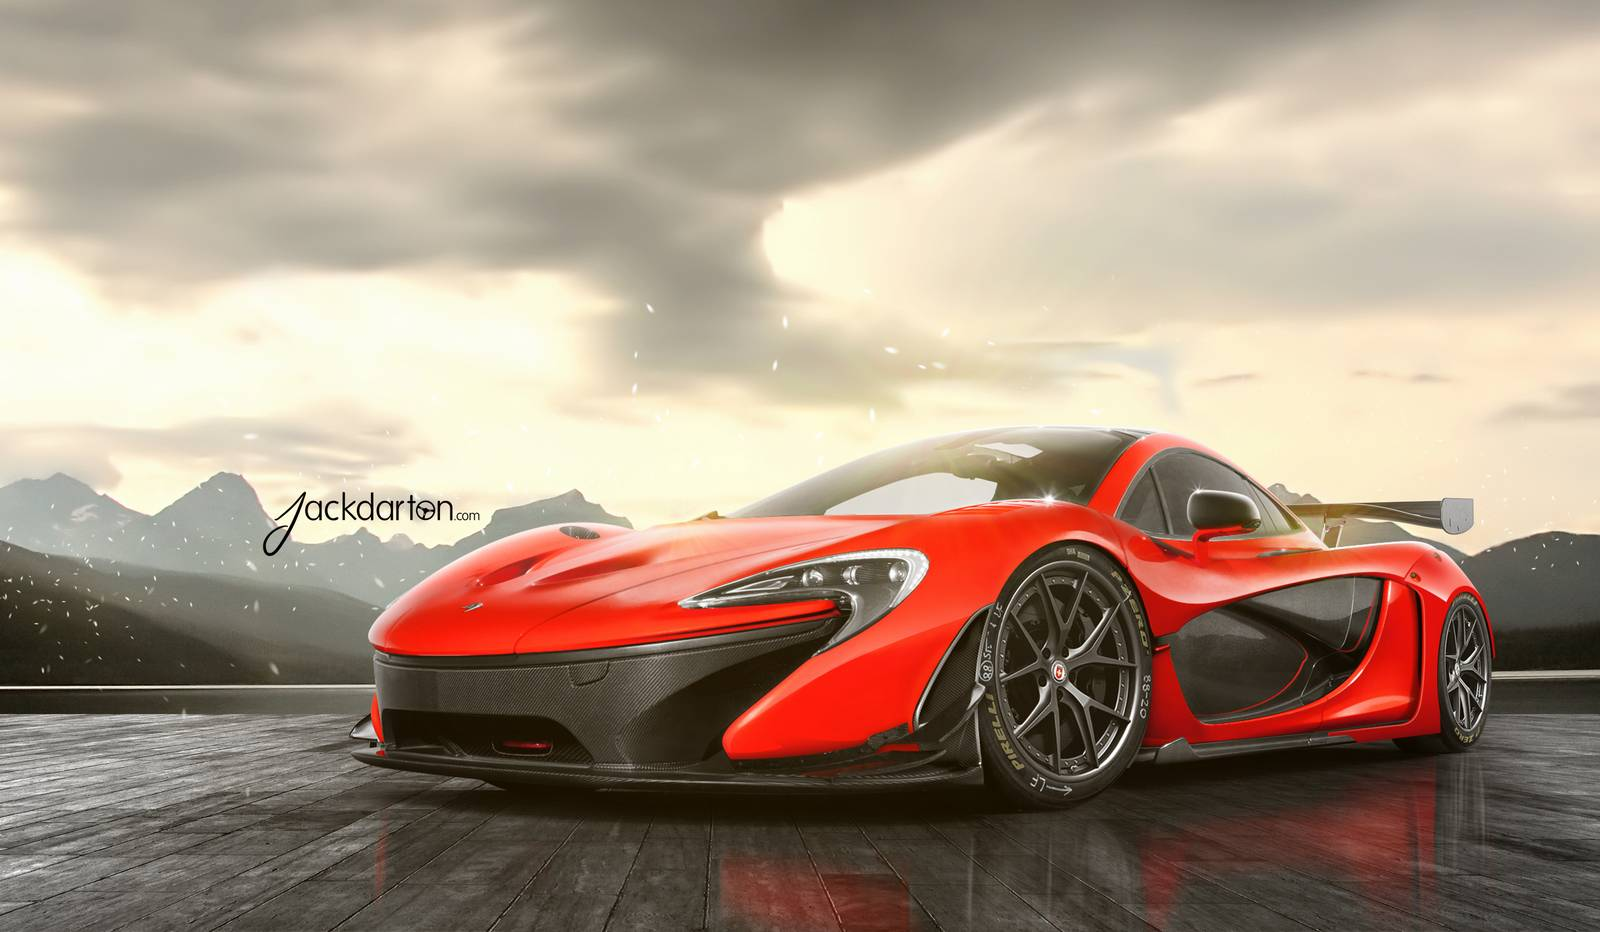 racing inspired mclaren p1 with hre wheels is stunning gtspirit. Black Bedroom Furniture Sets. Home Design Ideas